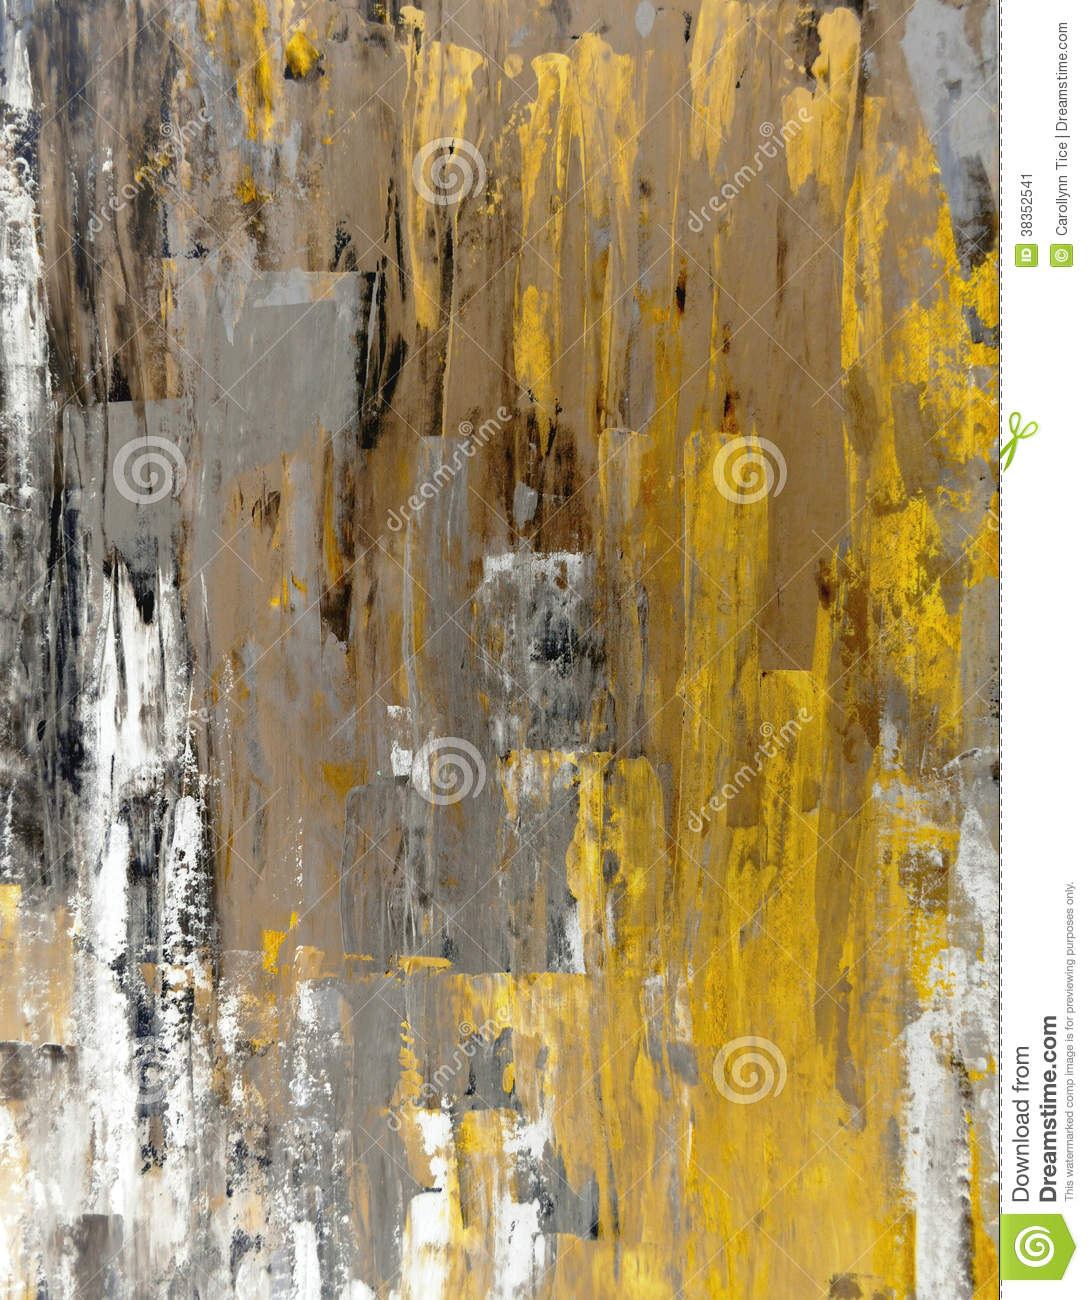 Brown And Yellow Abstract Art Painting Stock Image - Image ...Yellow Abstract Painting